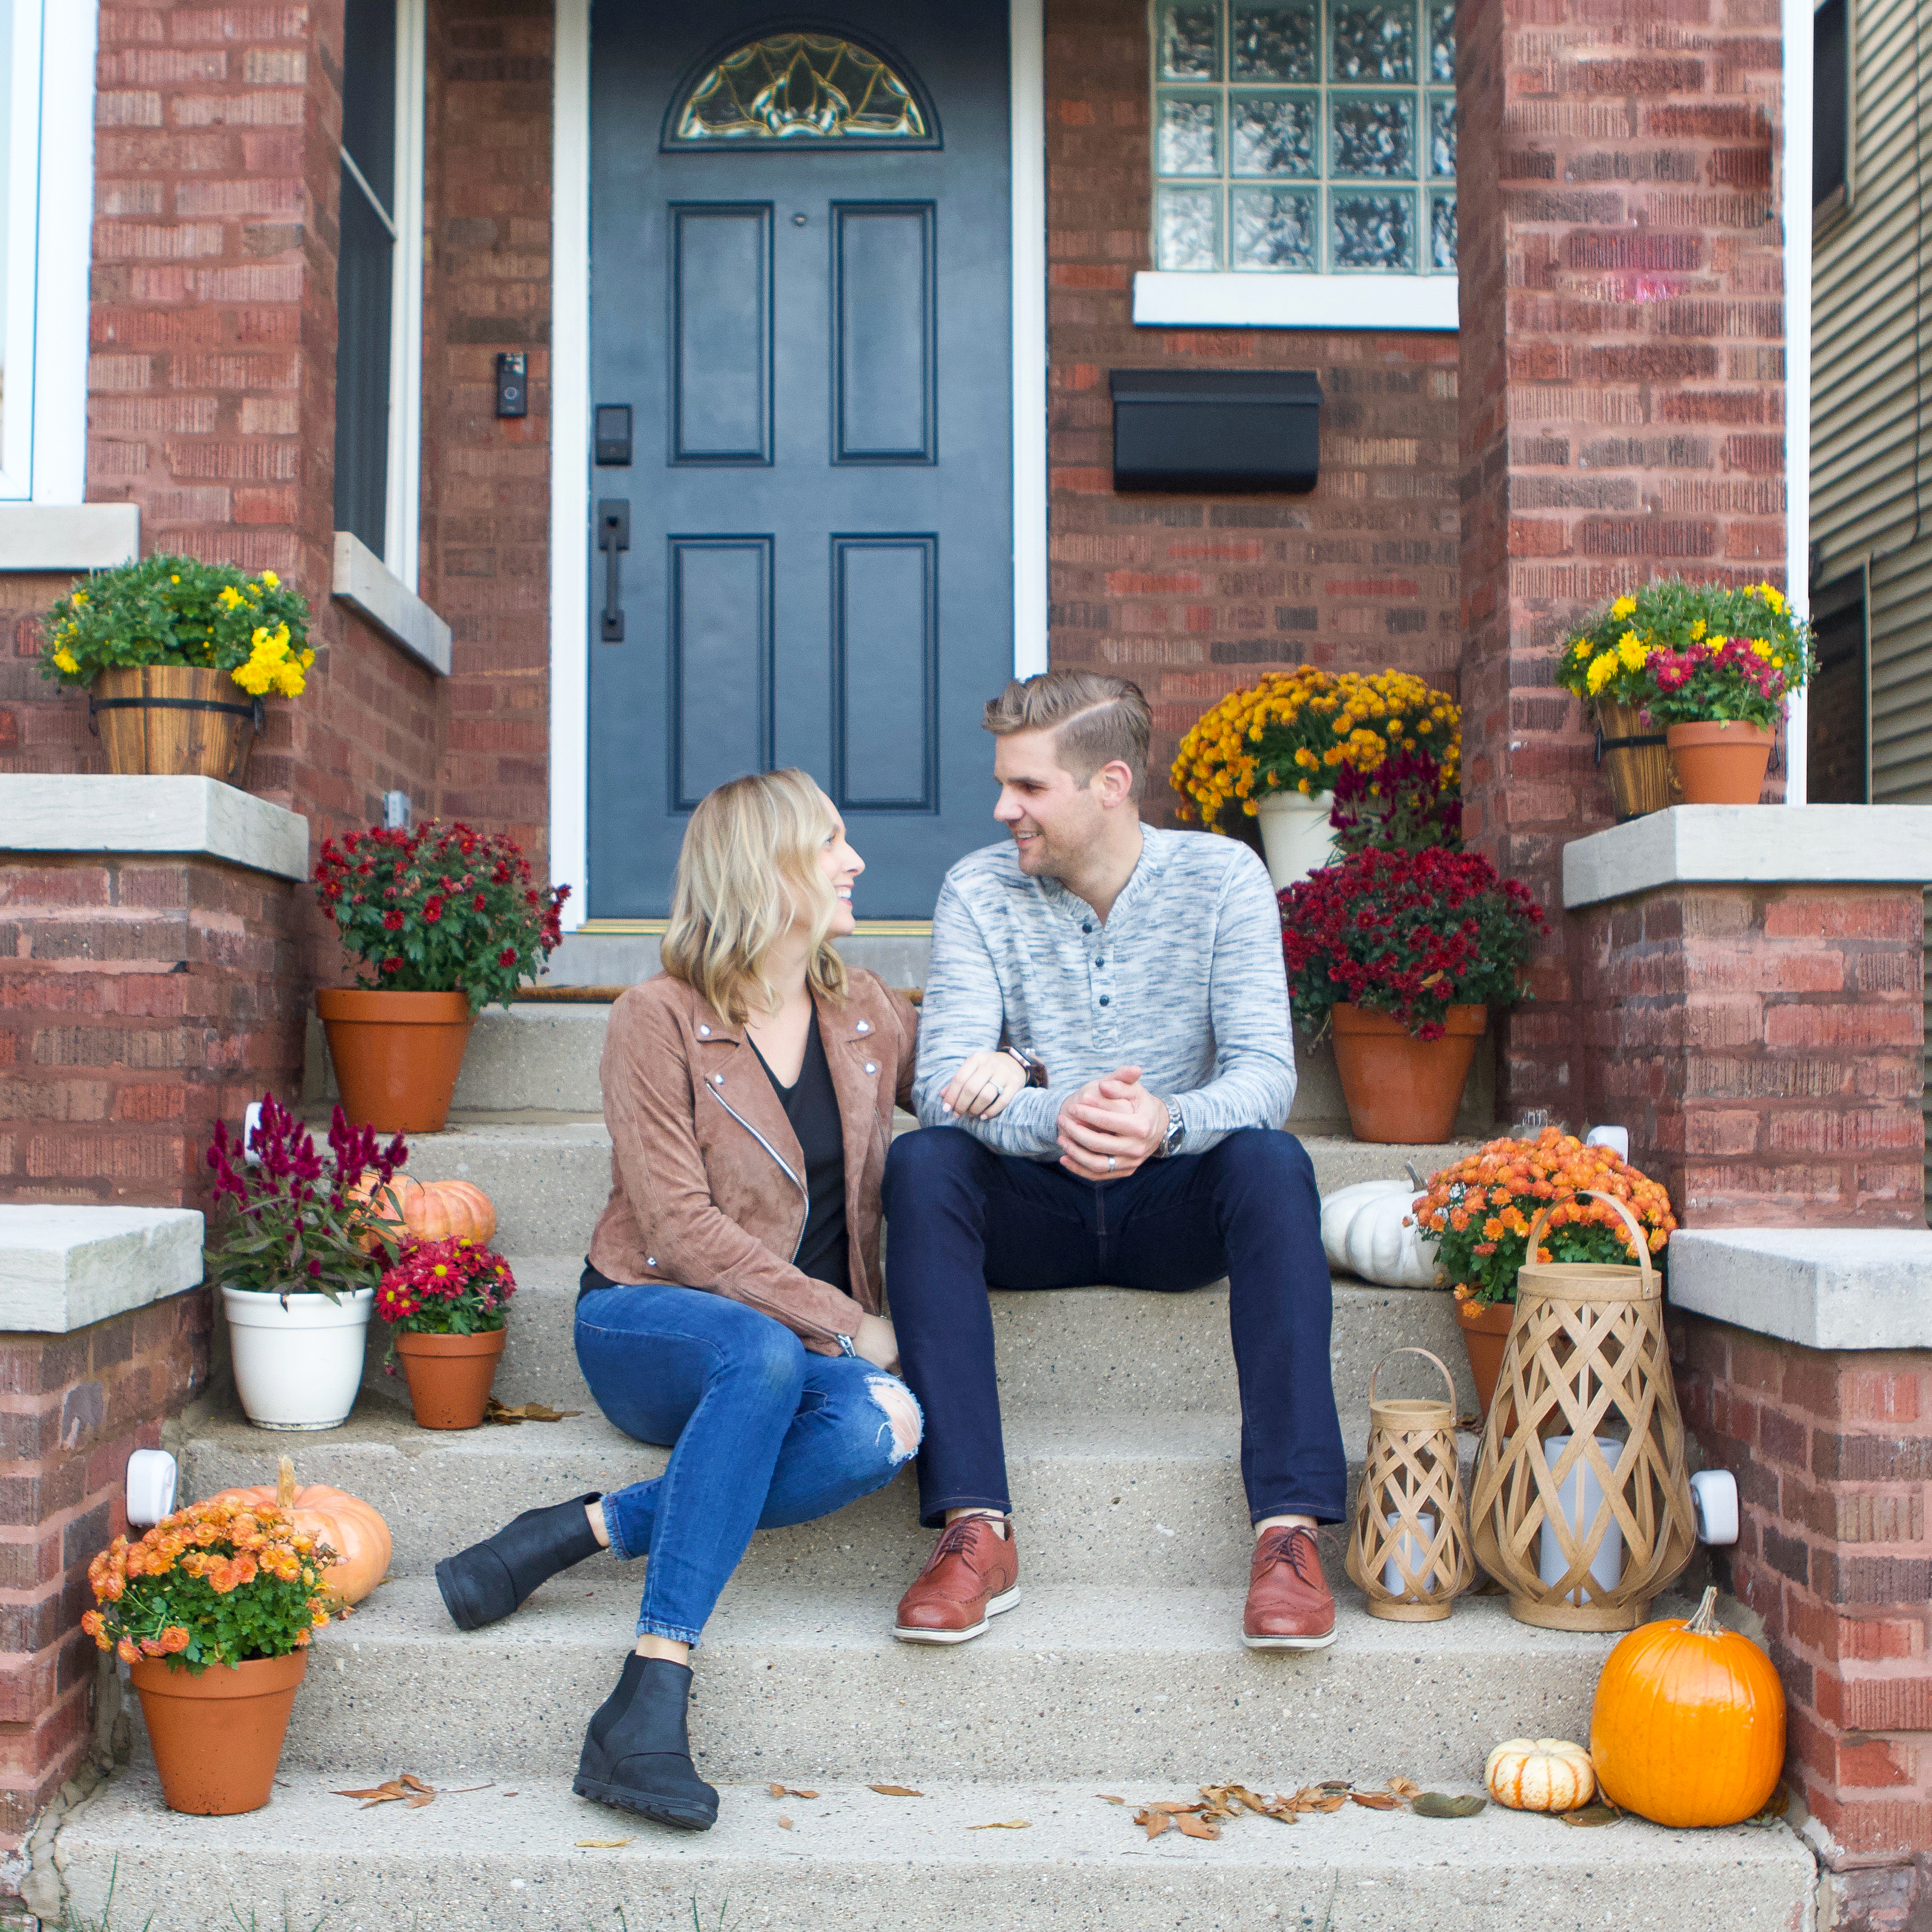 Casey and Finn on Fall front porch